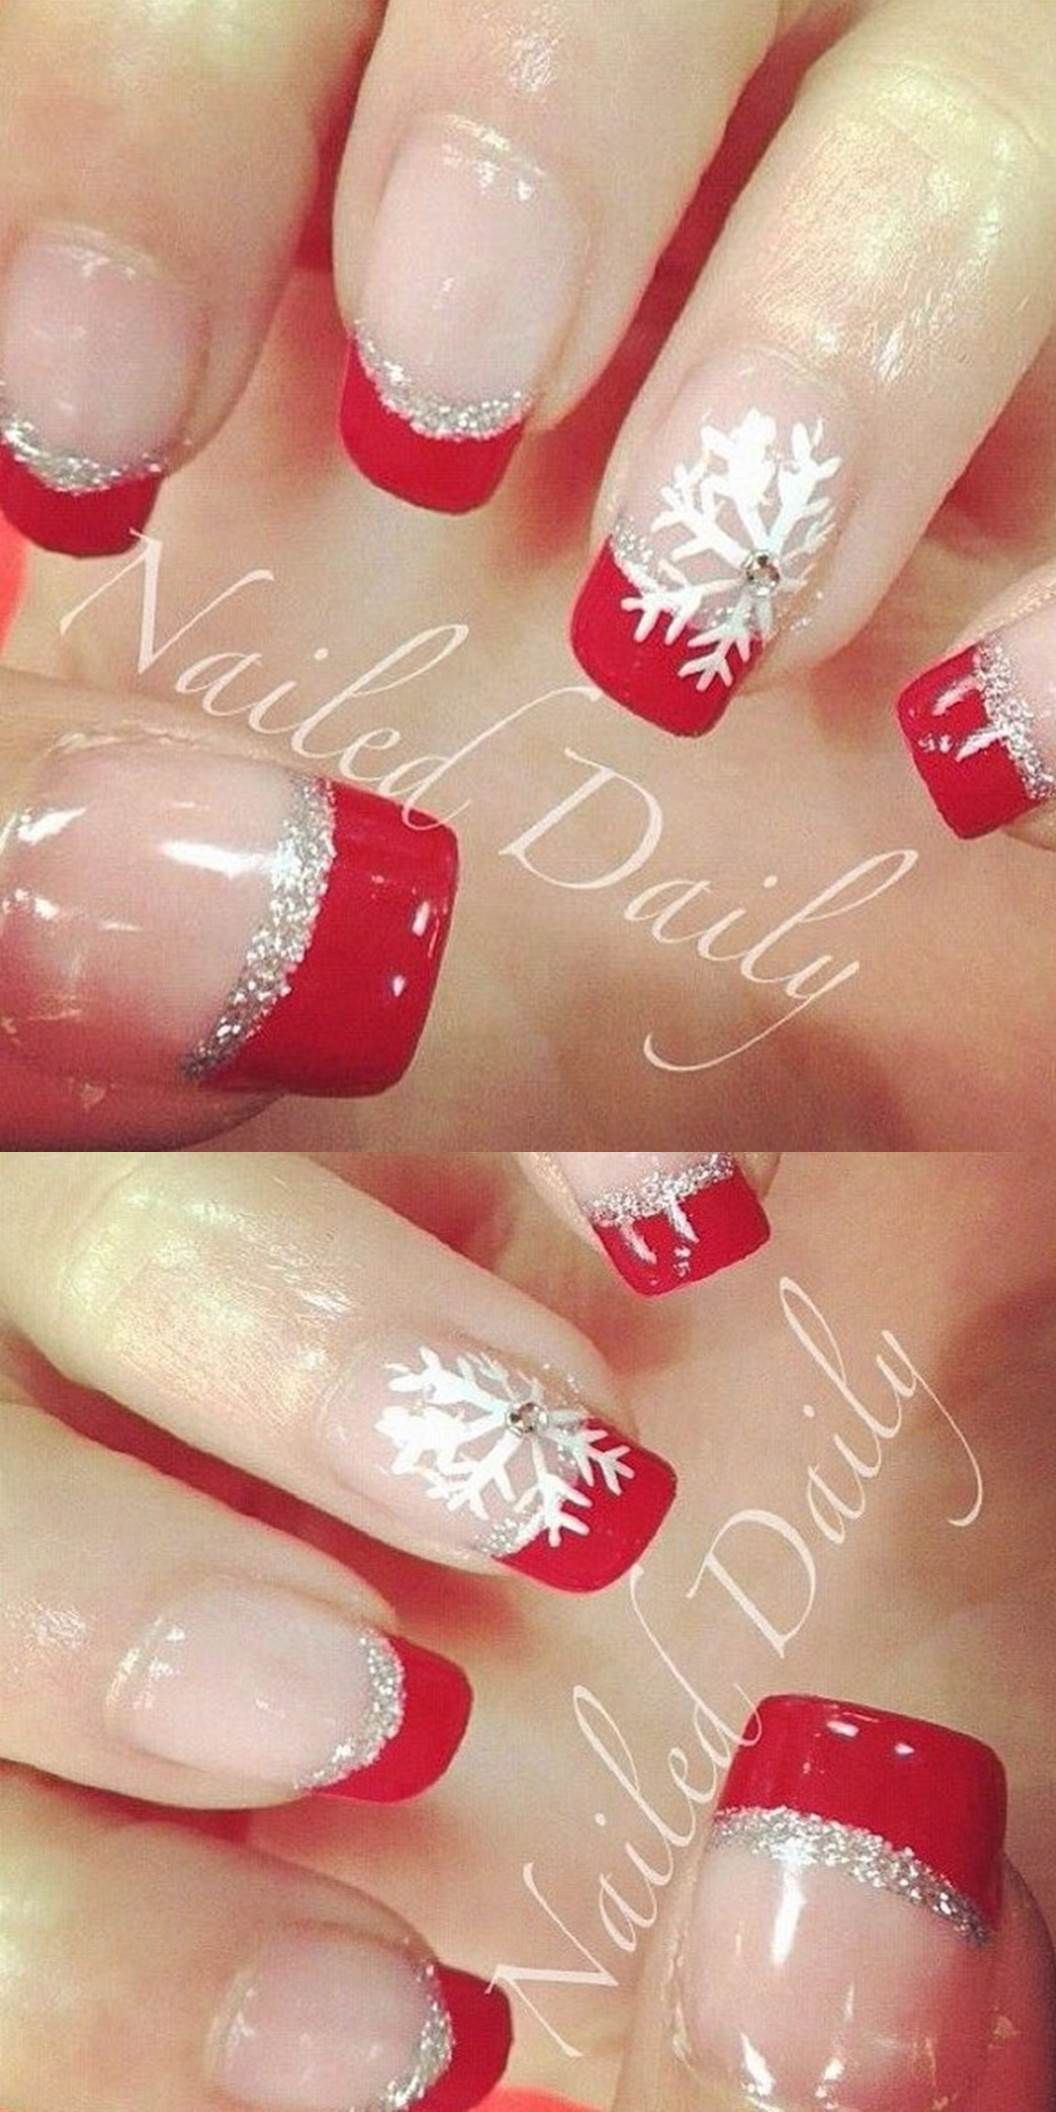 50+ FESTIVE AND BRIGHT NAIL ART IDEAS FOR